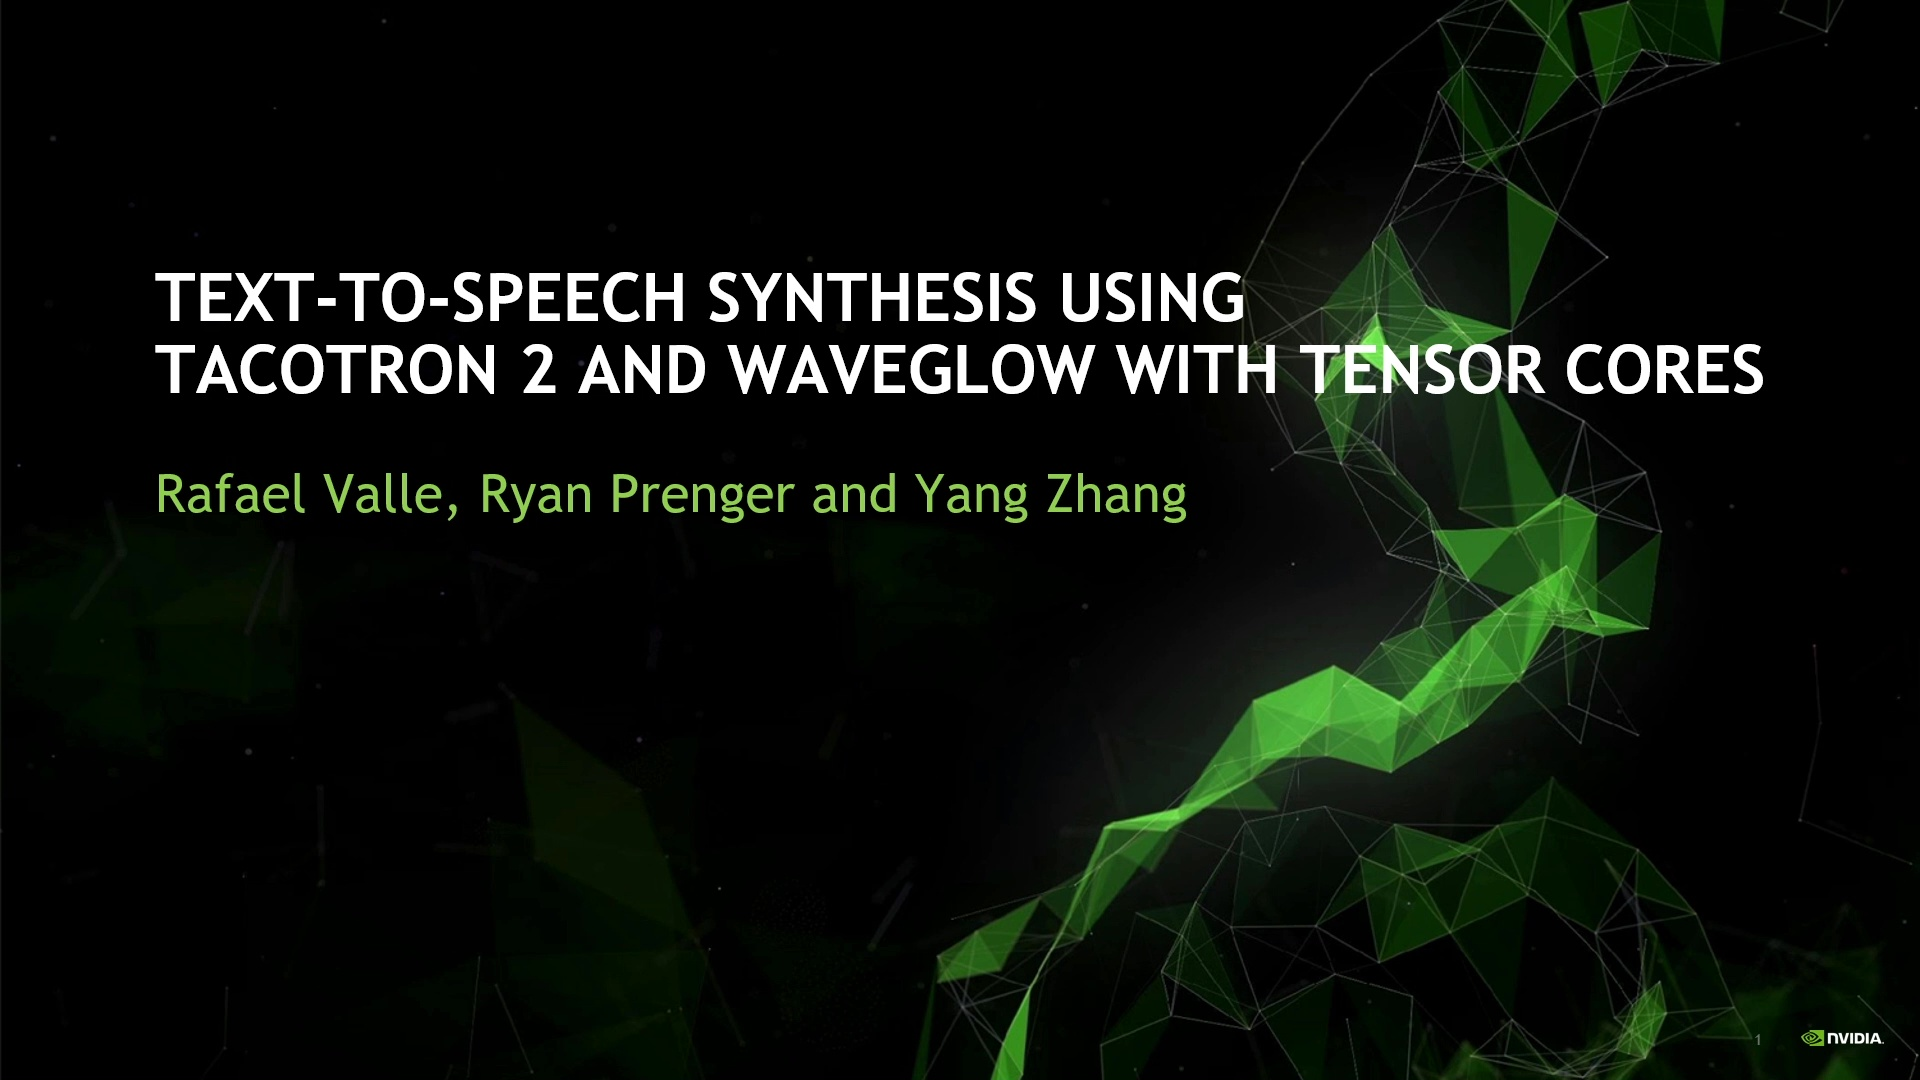 GTC Silicon Valley-2019: Text-to-Speech: Overview of the